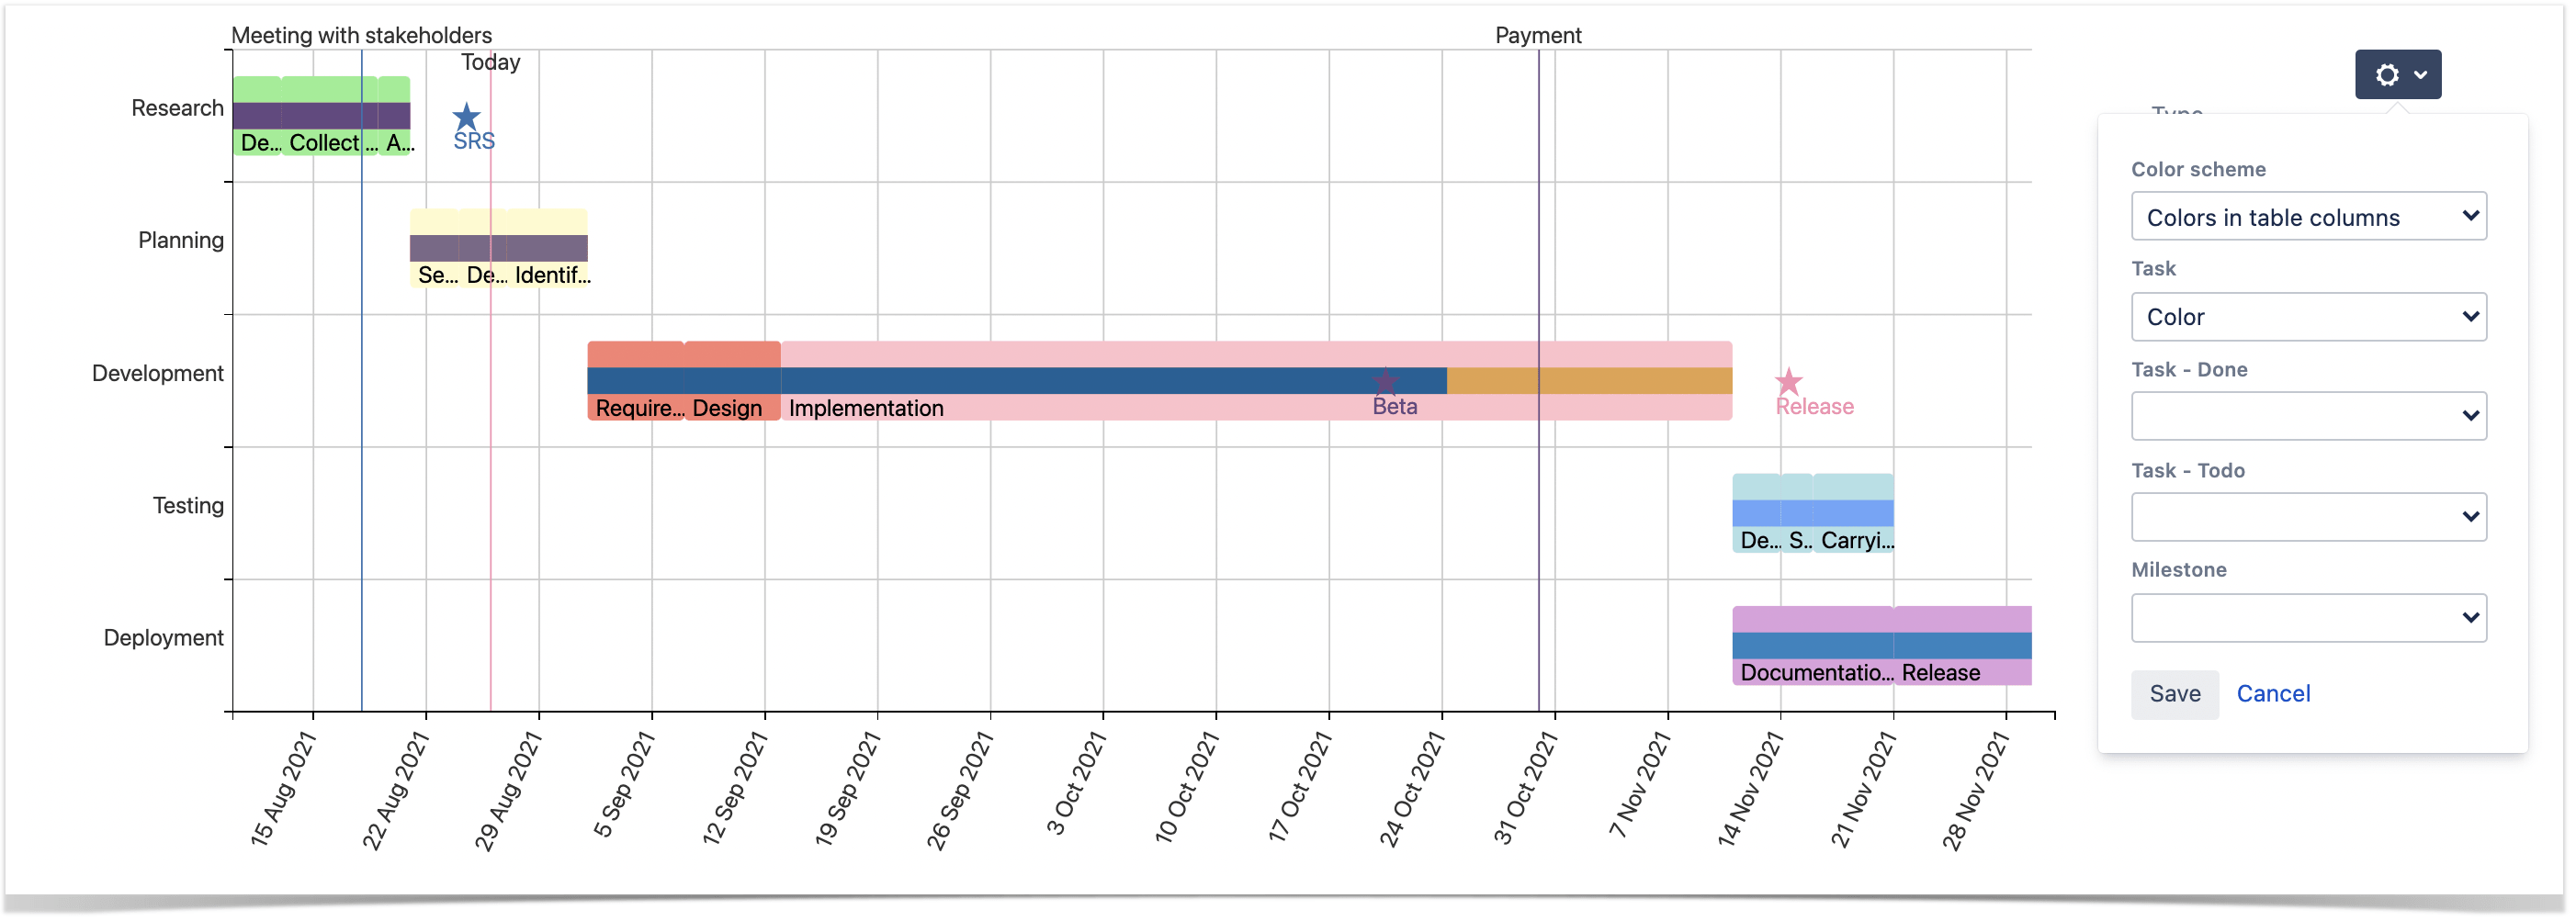 Gantt chart with colors from a table